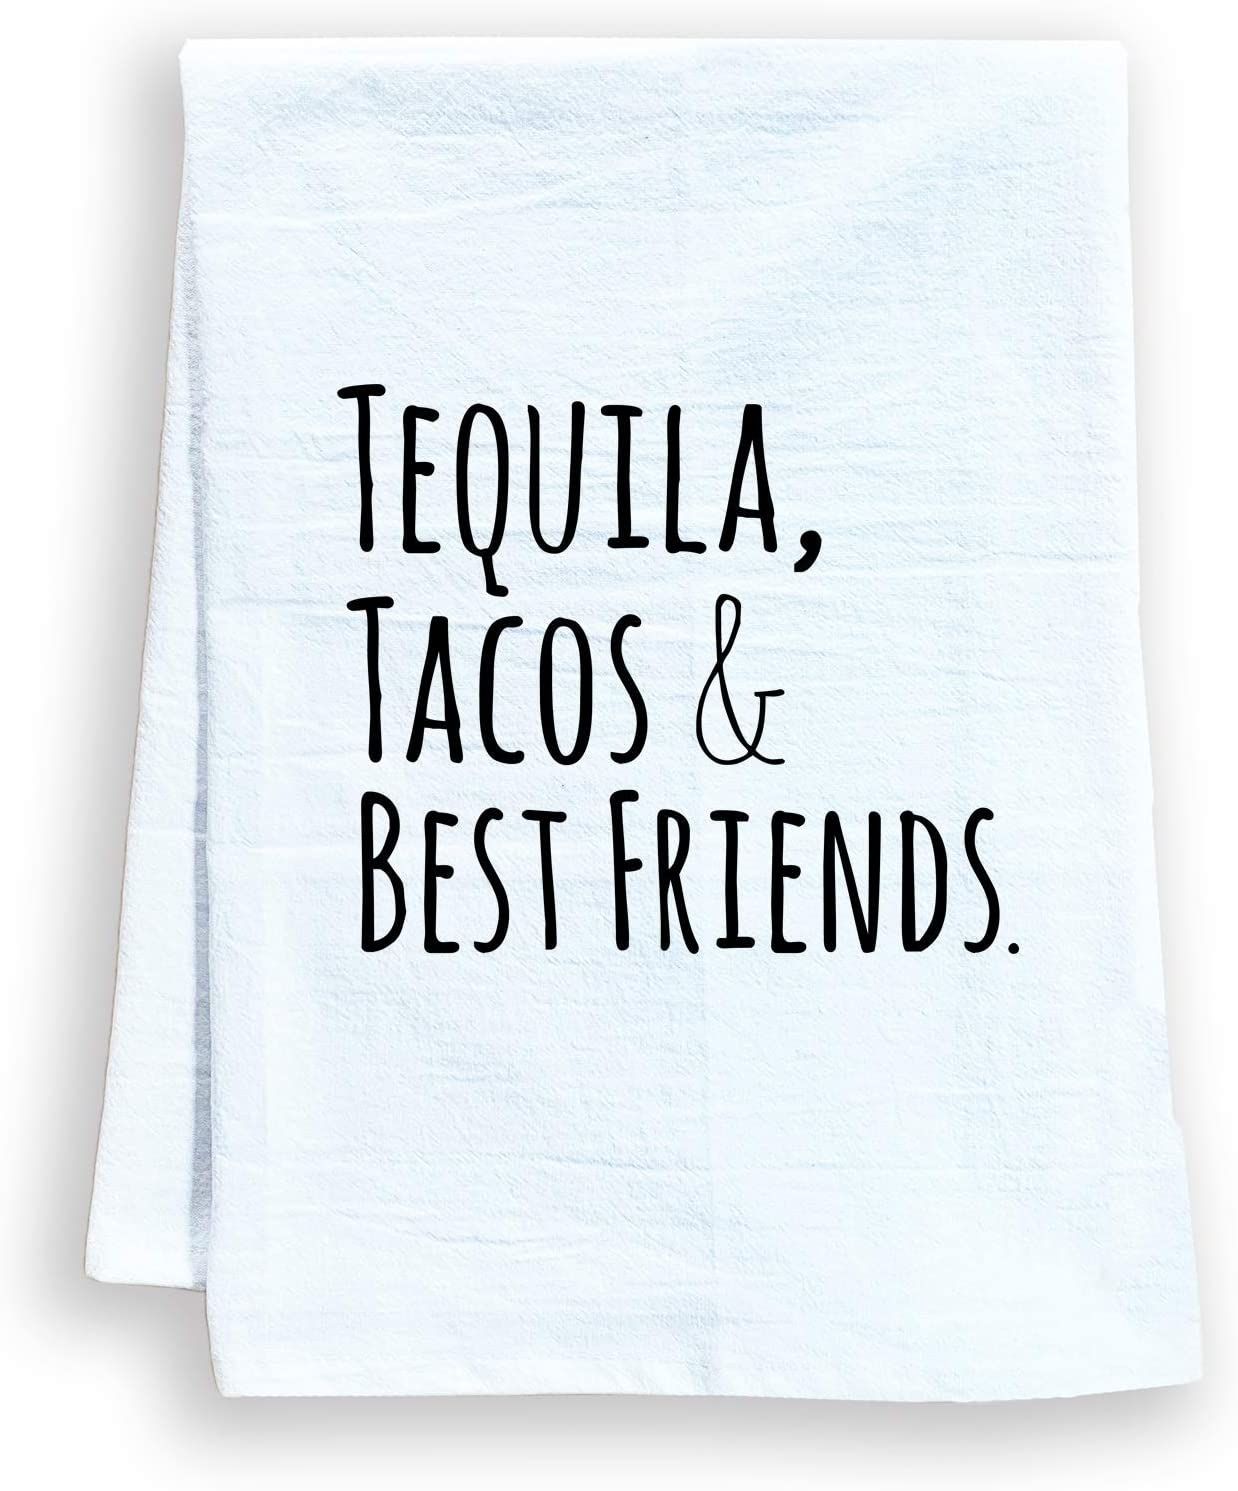 Moonlight Makers Funny Kitchen Towel, Tequila Tacos & Best Friends, Flour Sack Dish Towel, Sweet Housewarming Gift, White